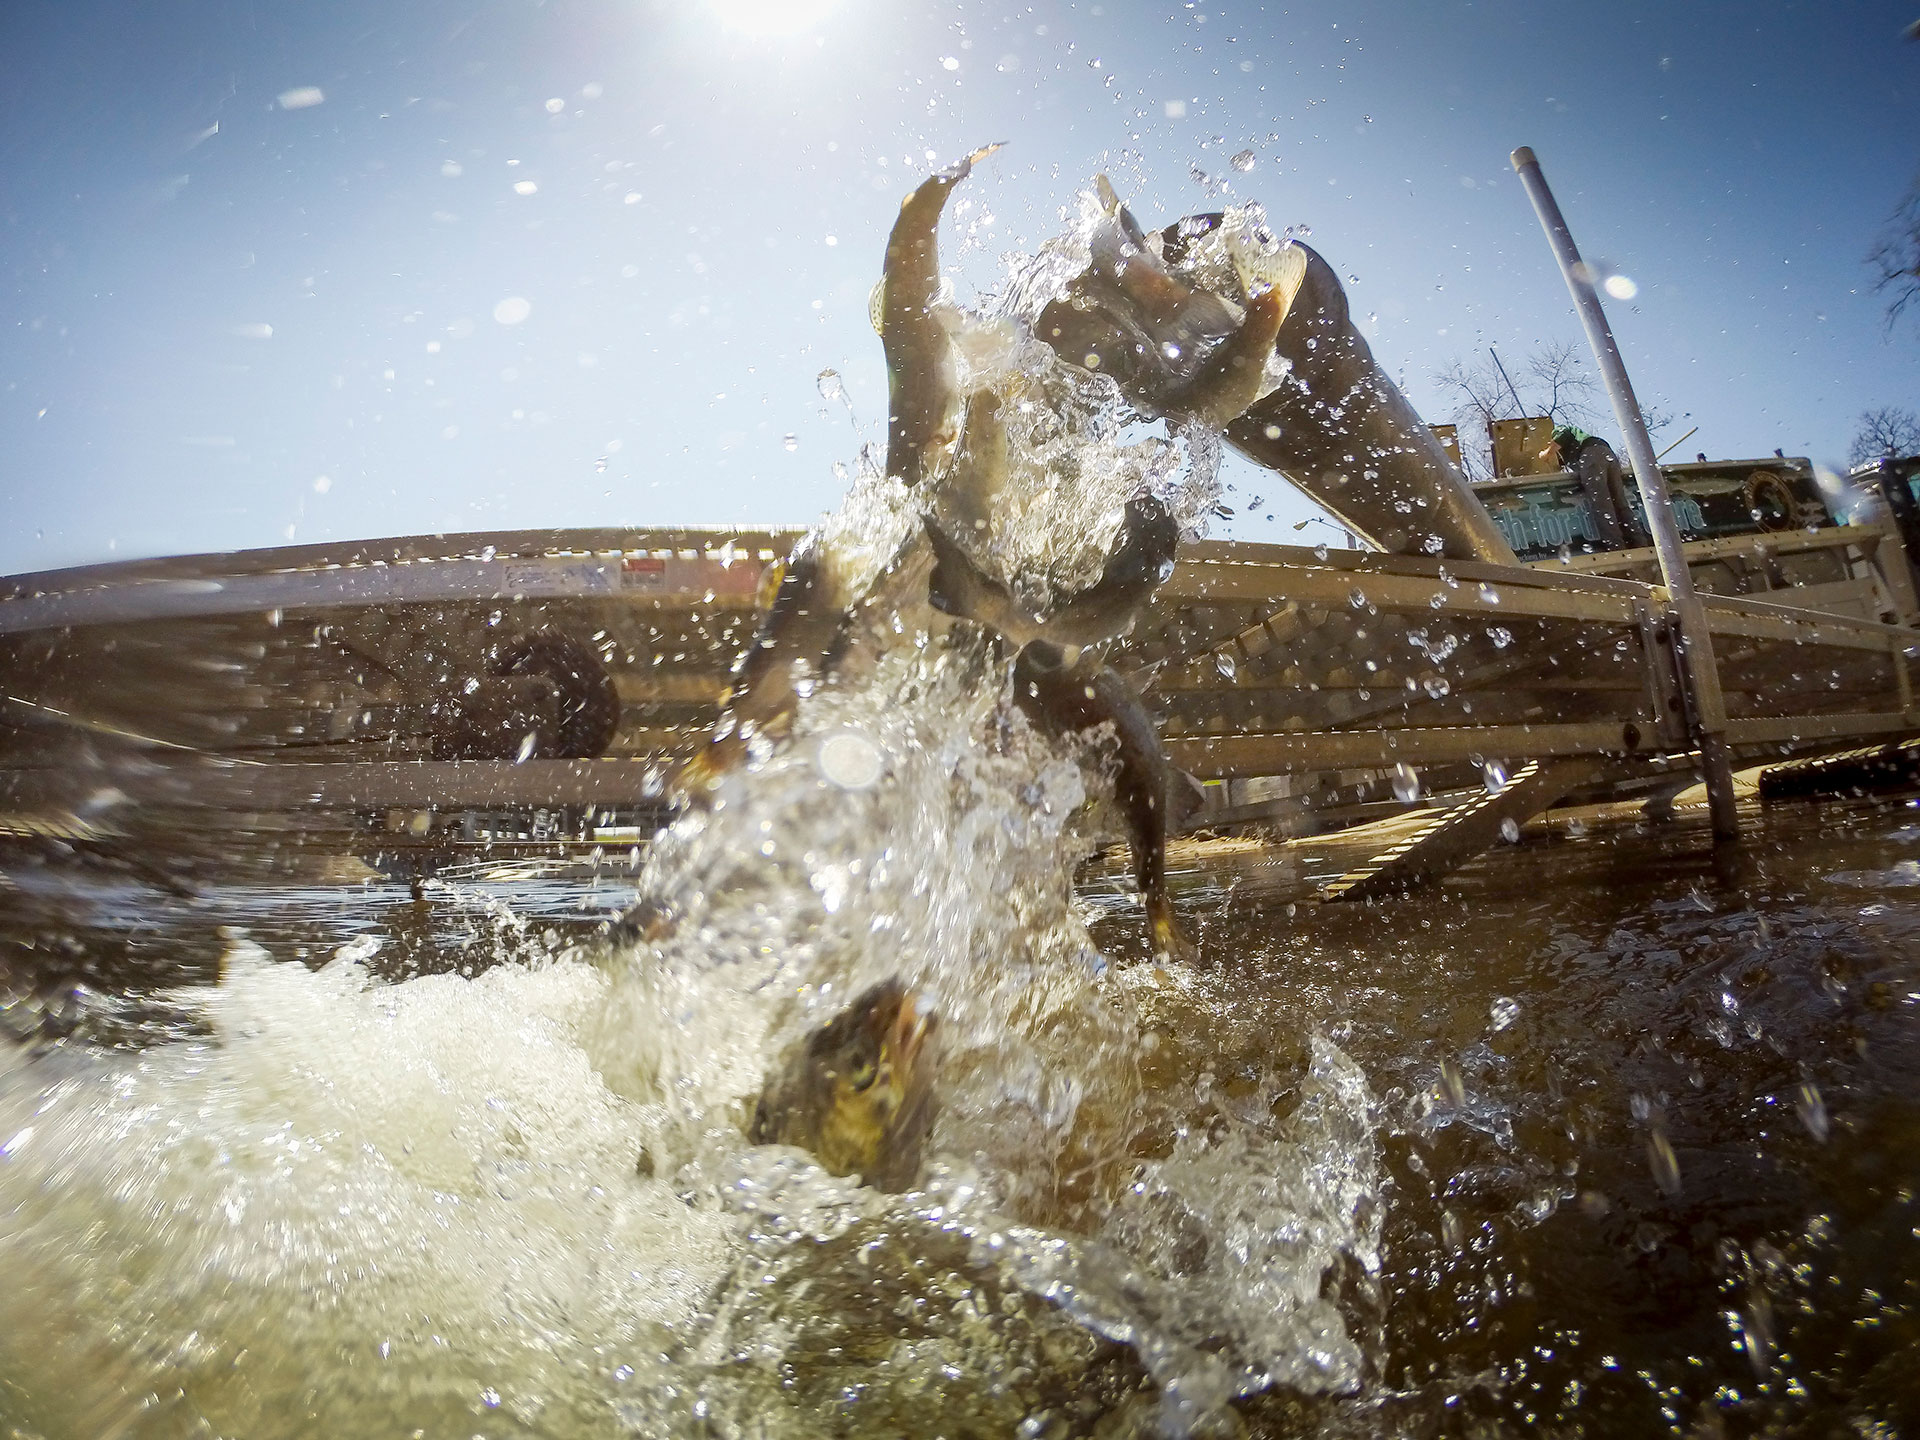 Michigan fish hatcheries help balance the ecosystem